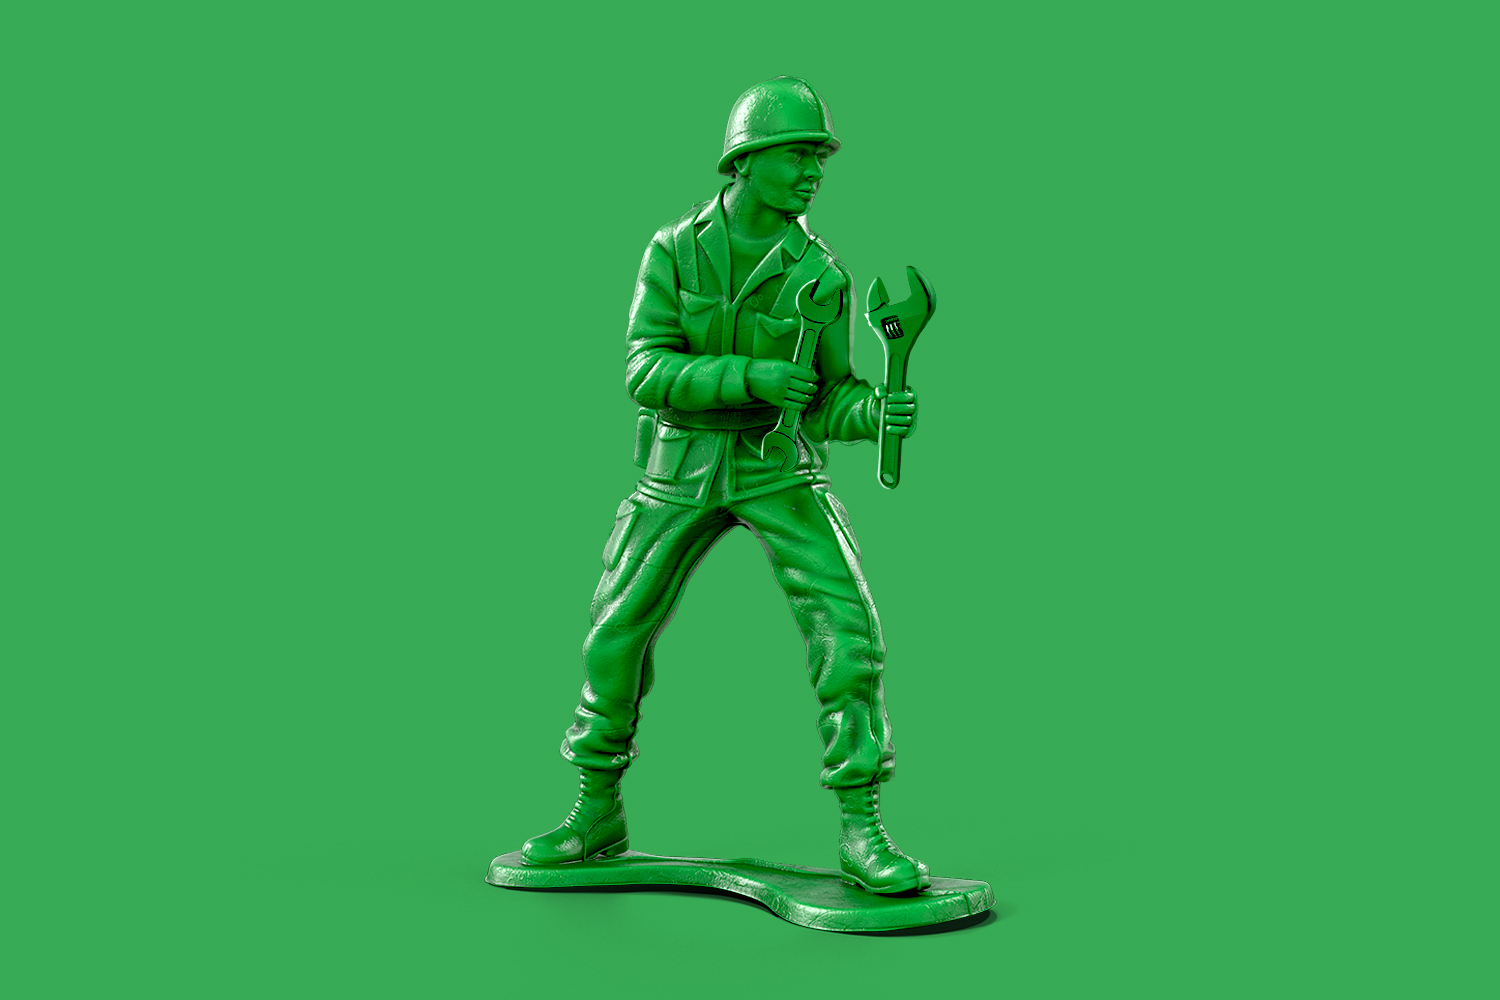 Army man toy with a wrench